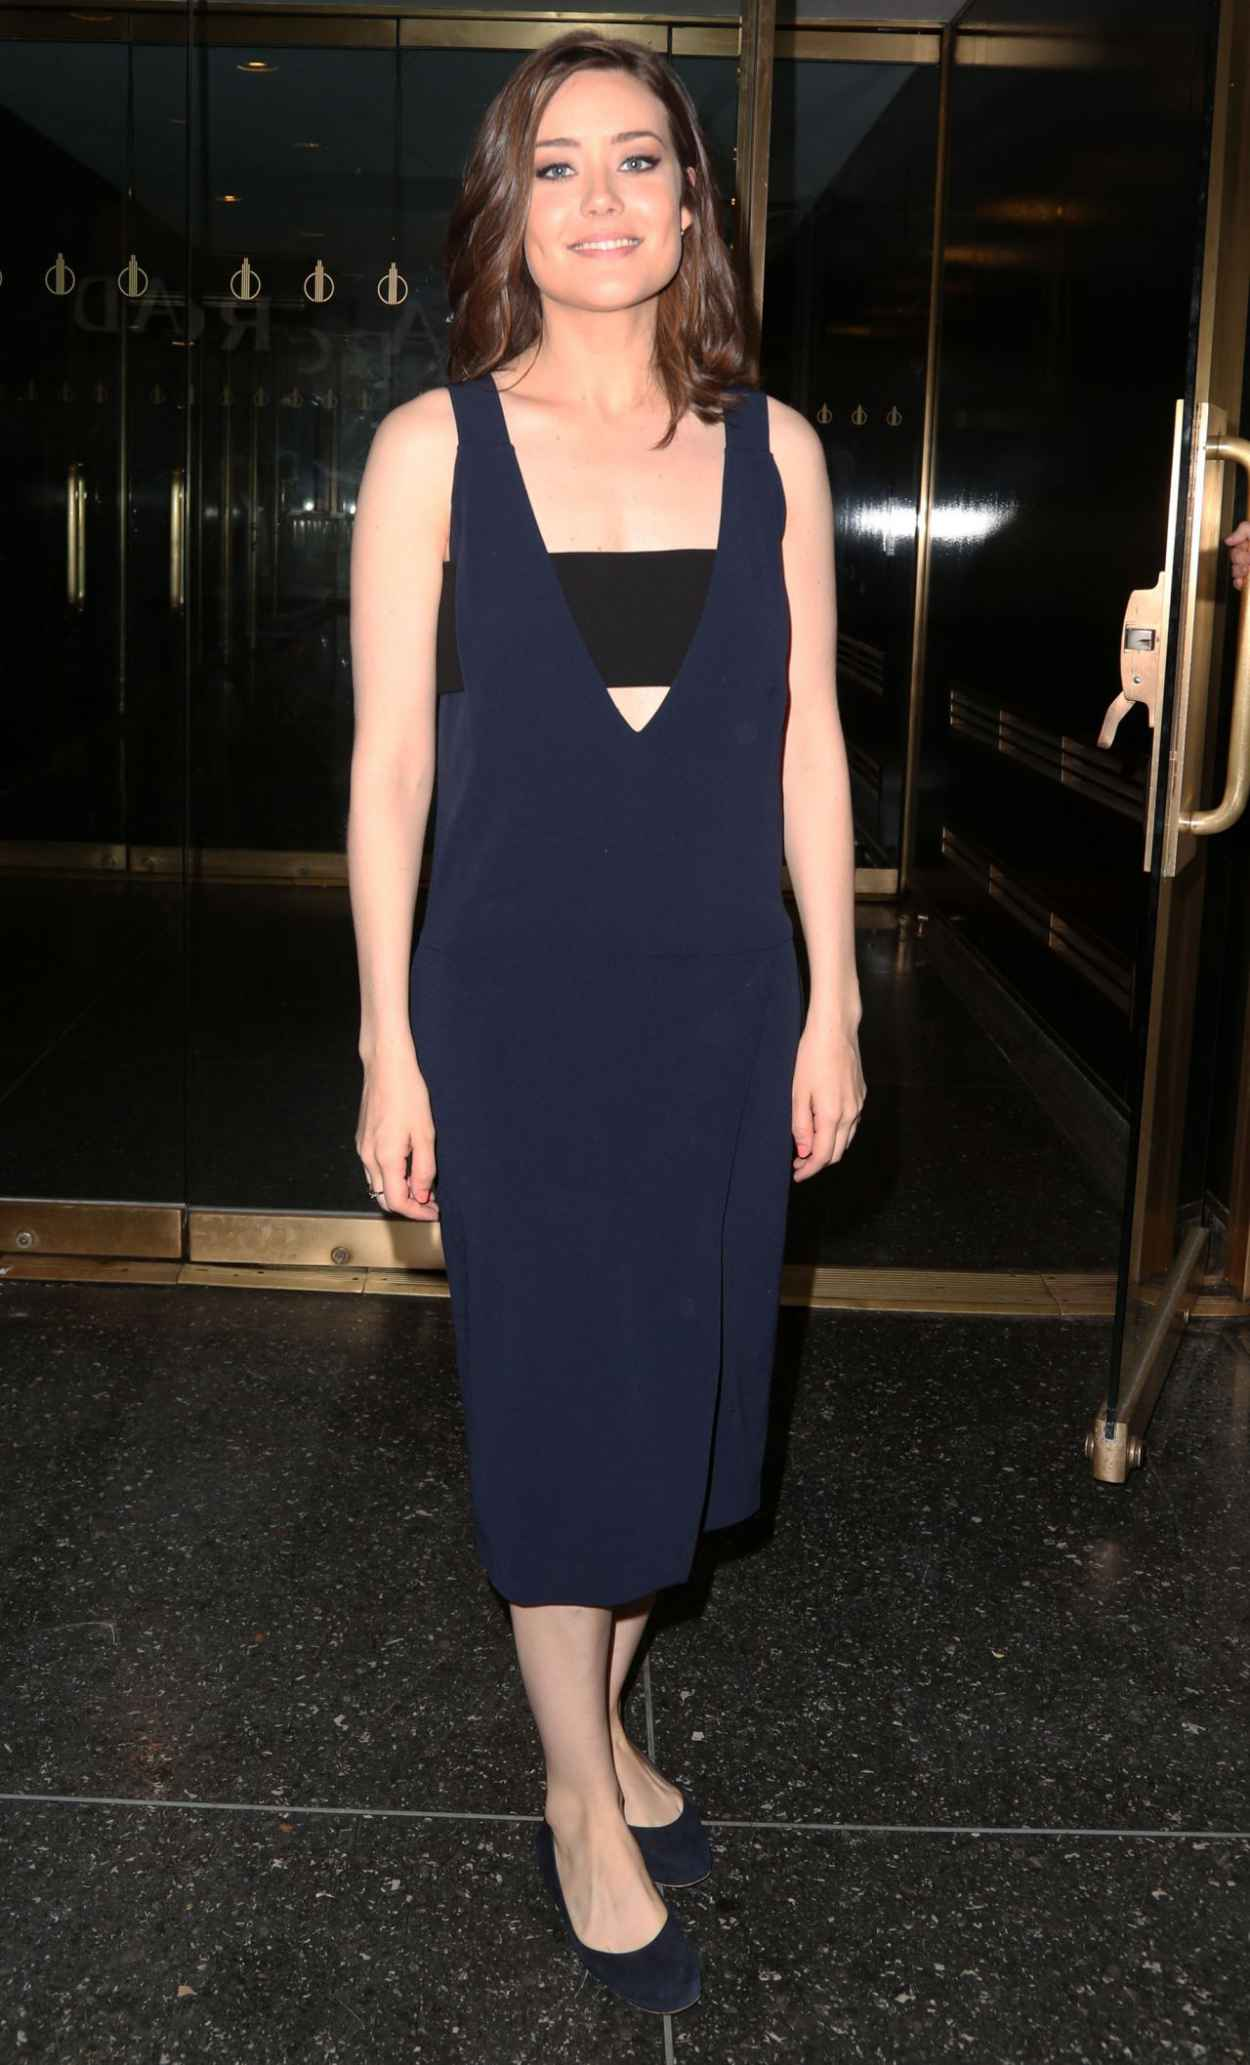 Megan Boone at the Today Show in New York City, May 2015-3